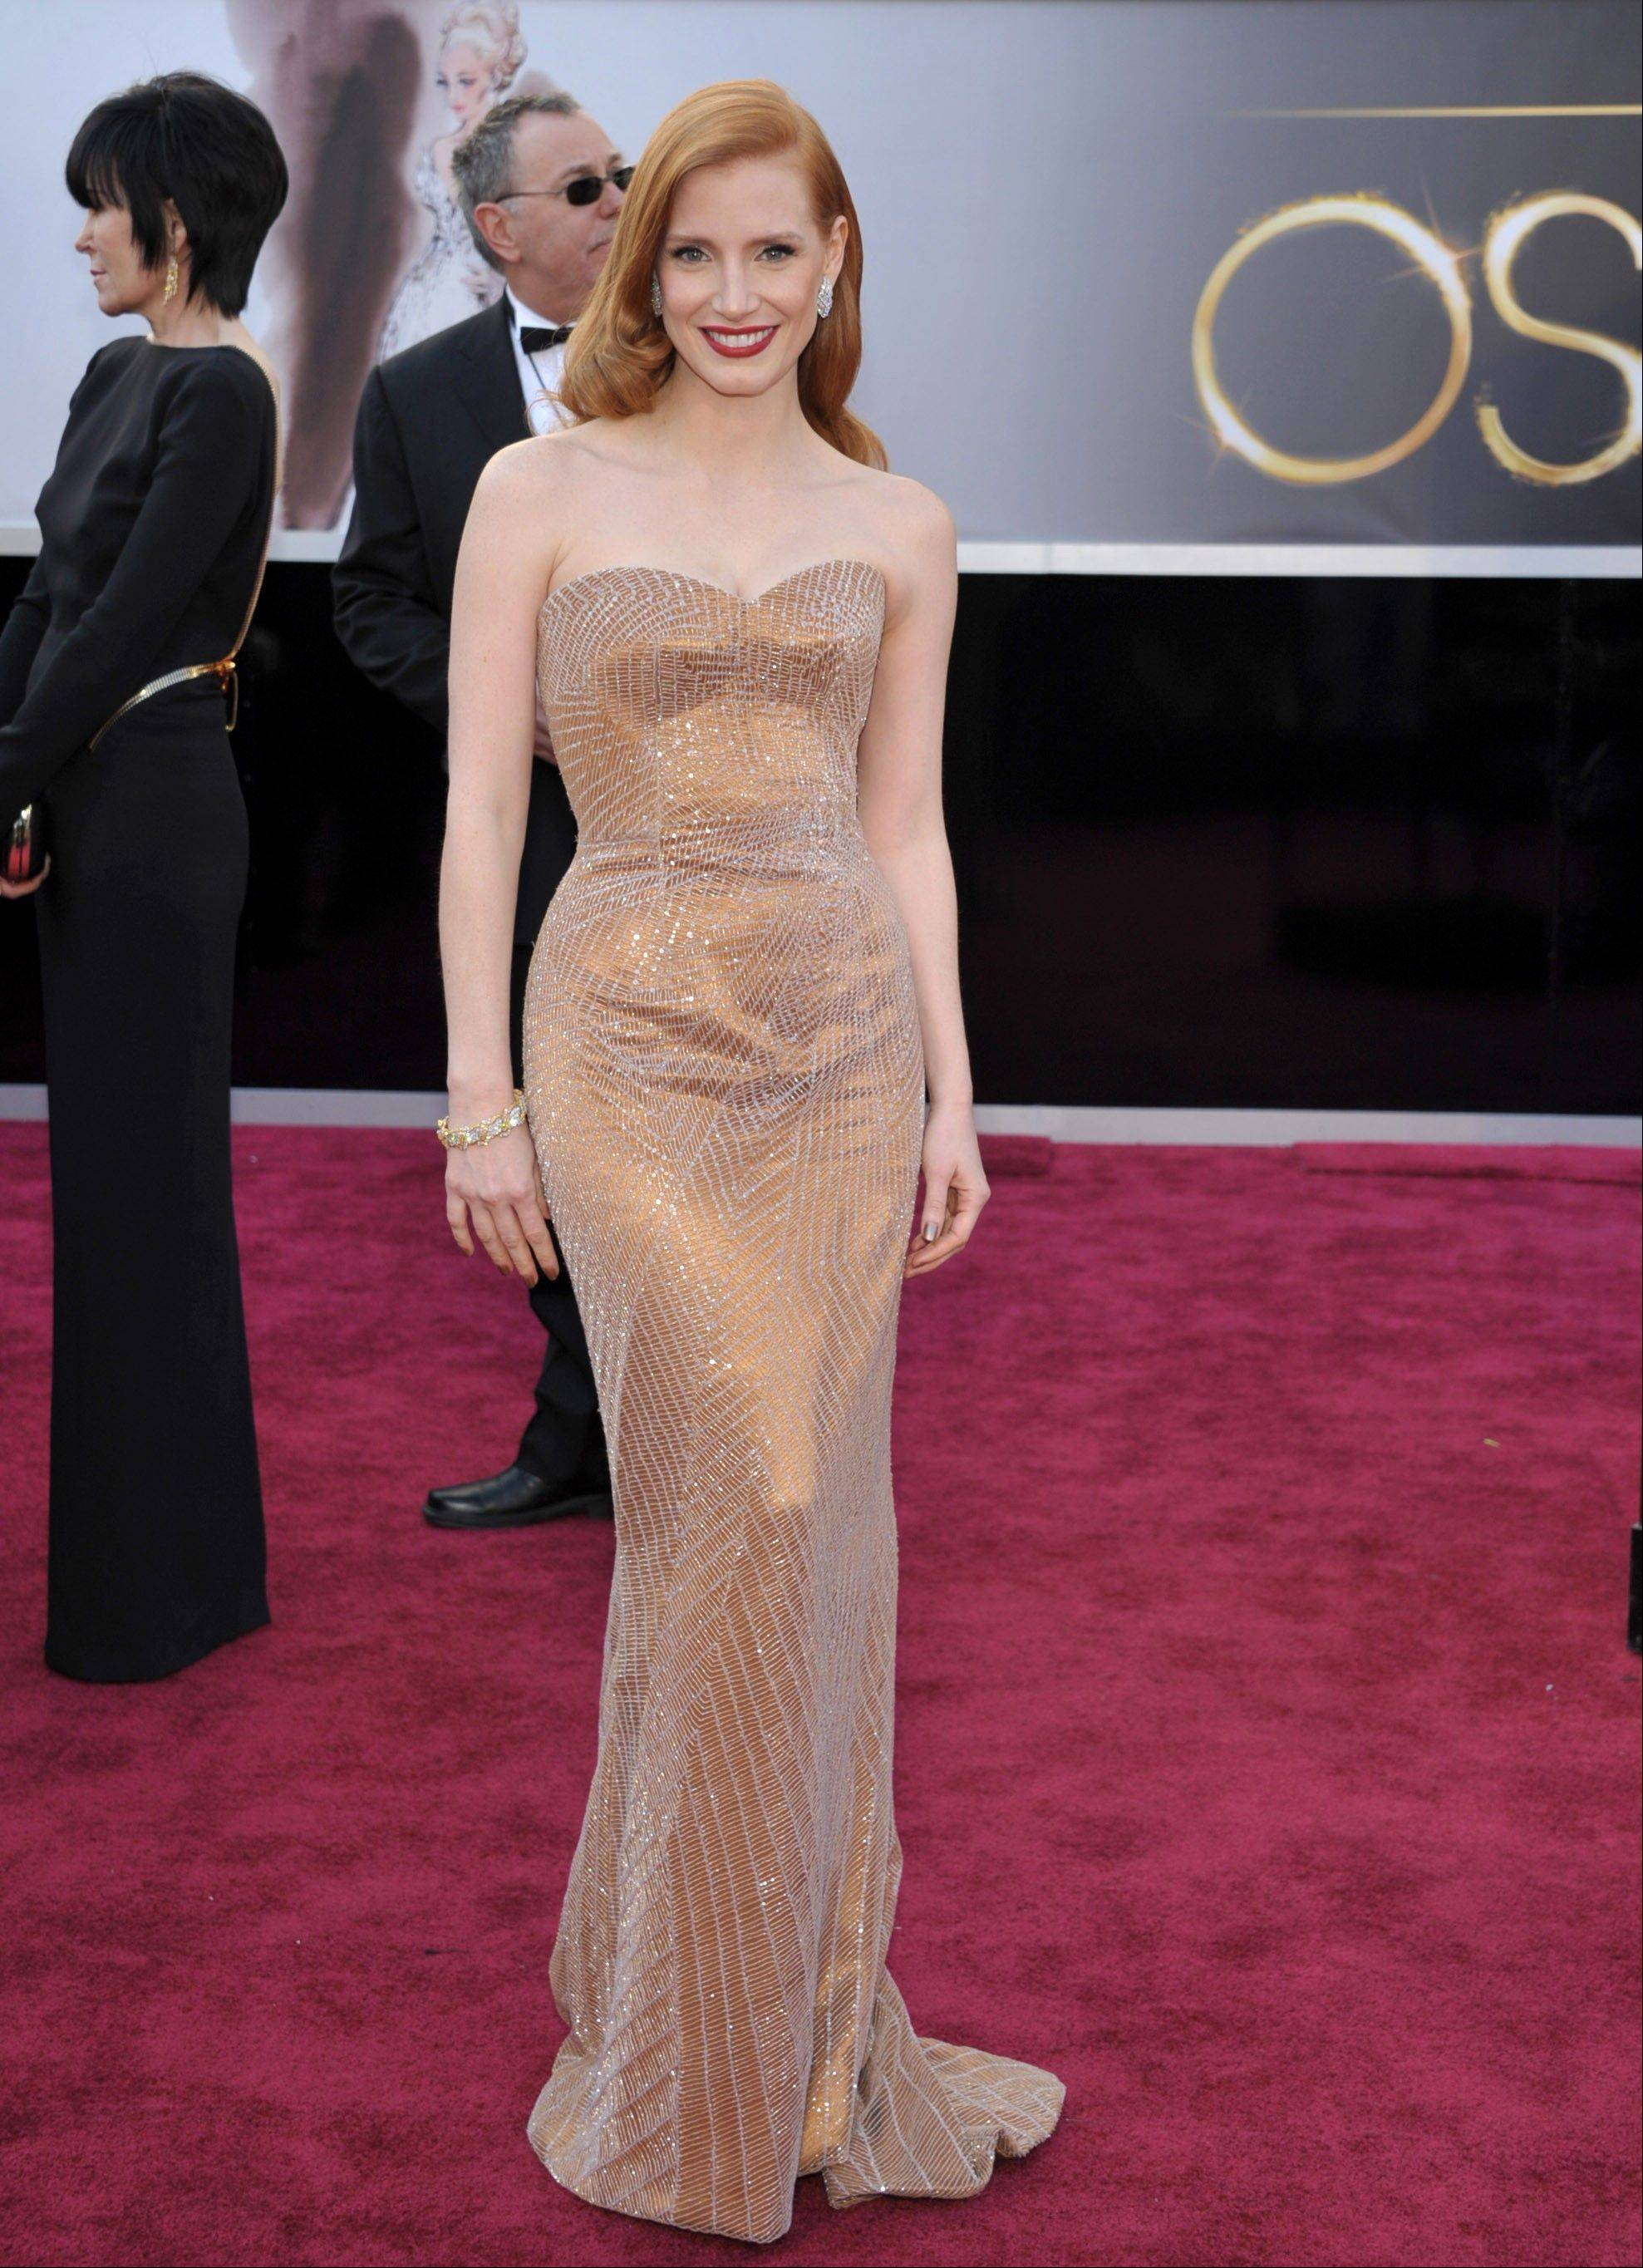 Jessica Chastain arrives at the 85th Academy Awards at the Dolby Theatre on Sunday in Los Angeles.